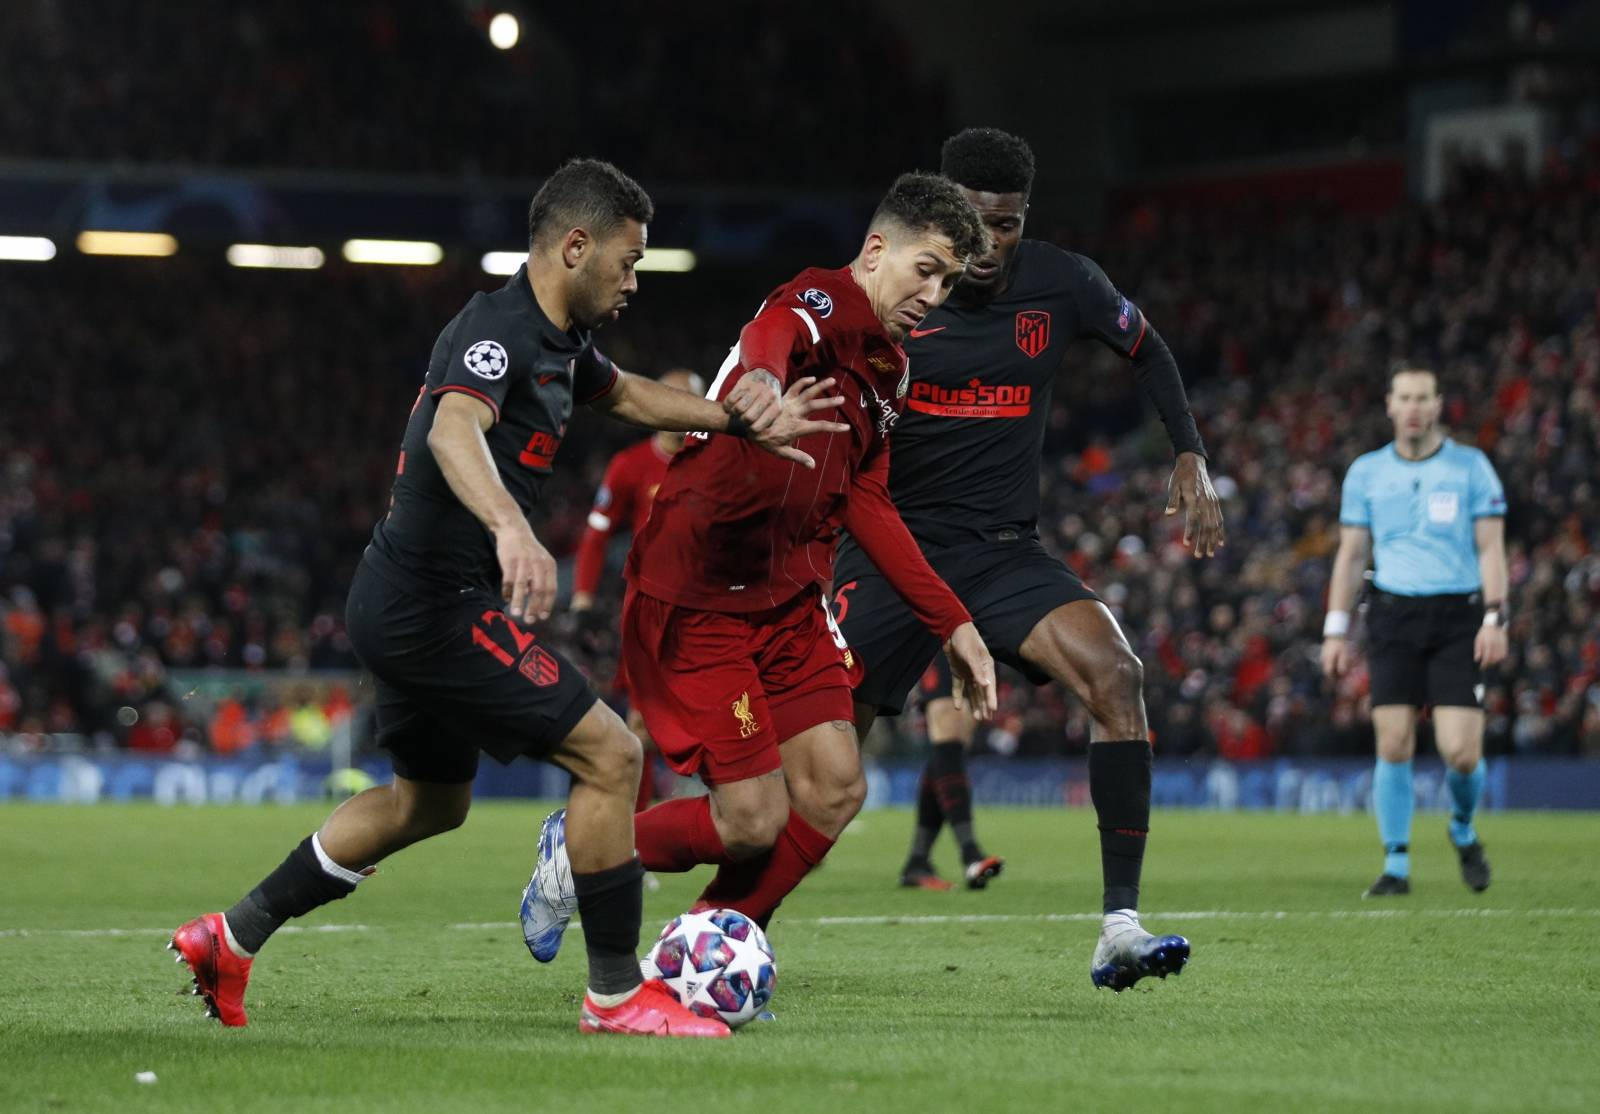 Liverpool v Atletico Madrid - UEFA Champions League - Round of 16 - Second Leg - Anfield